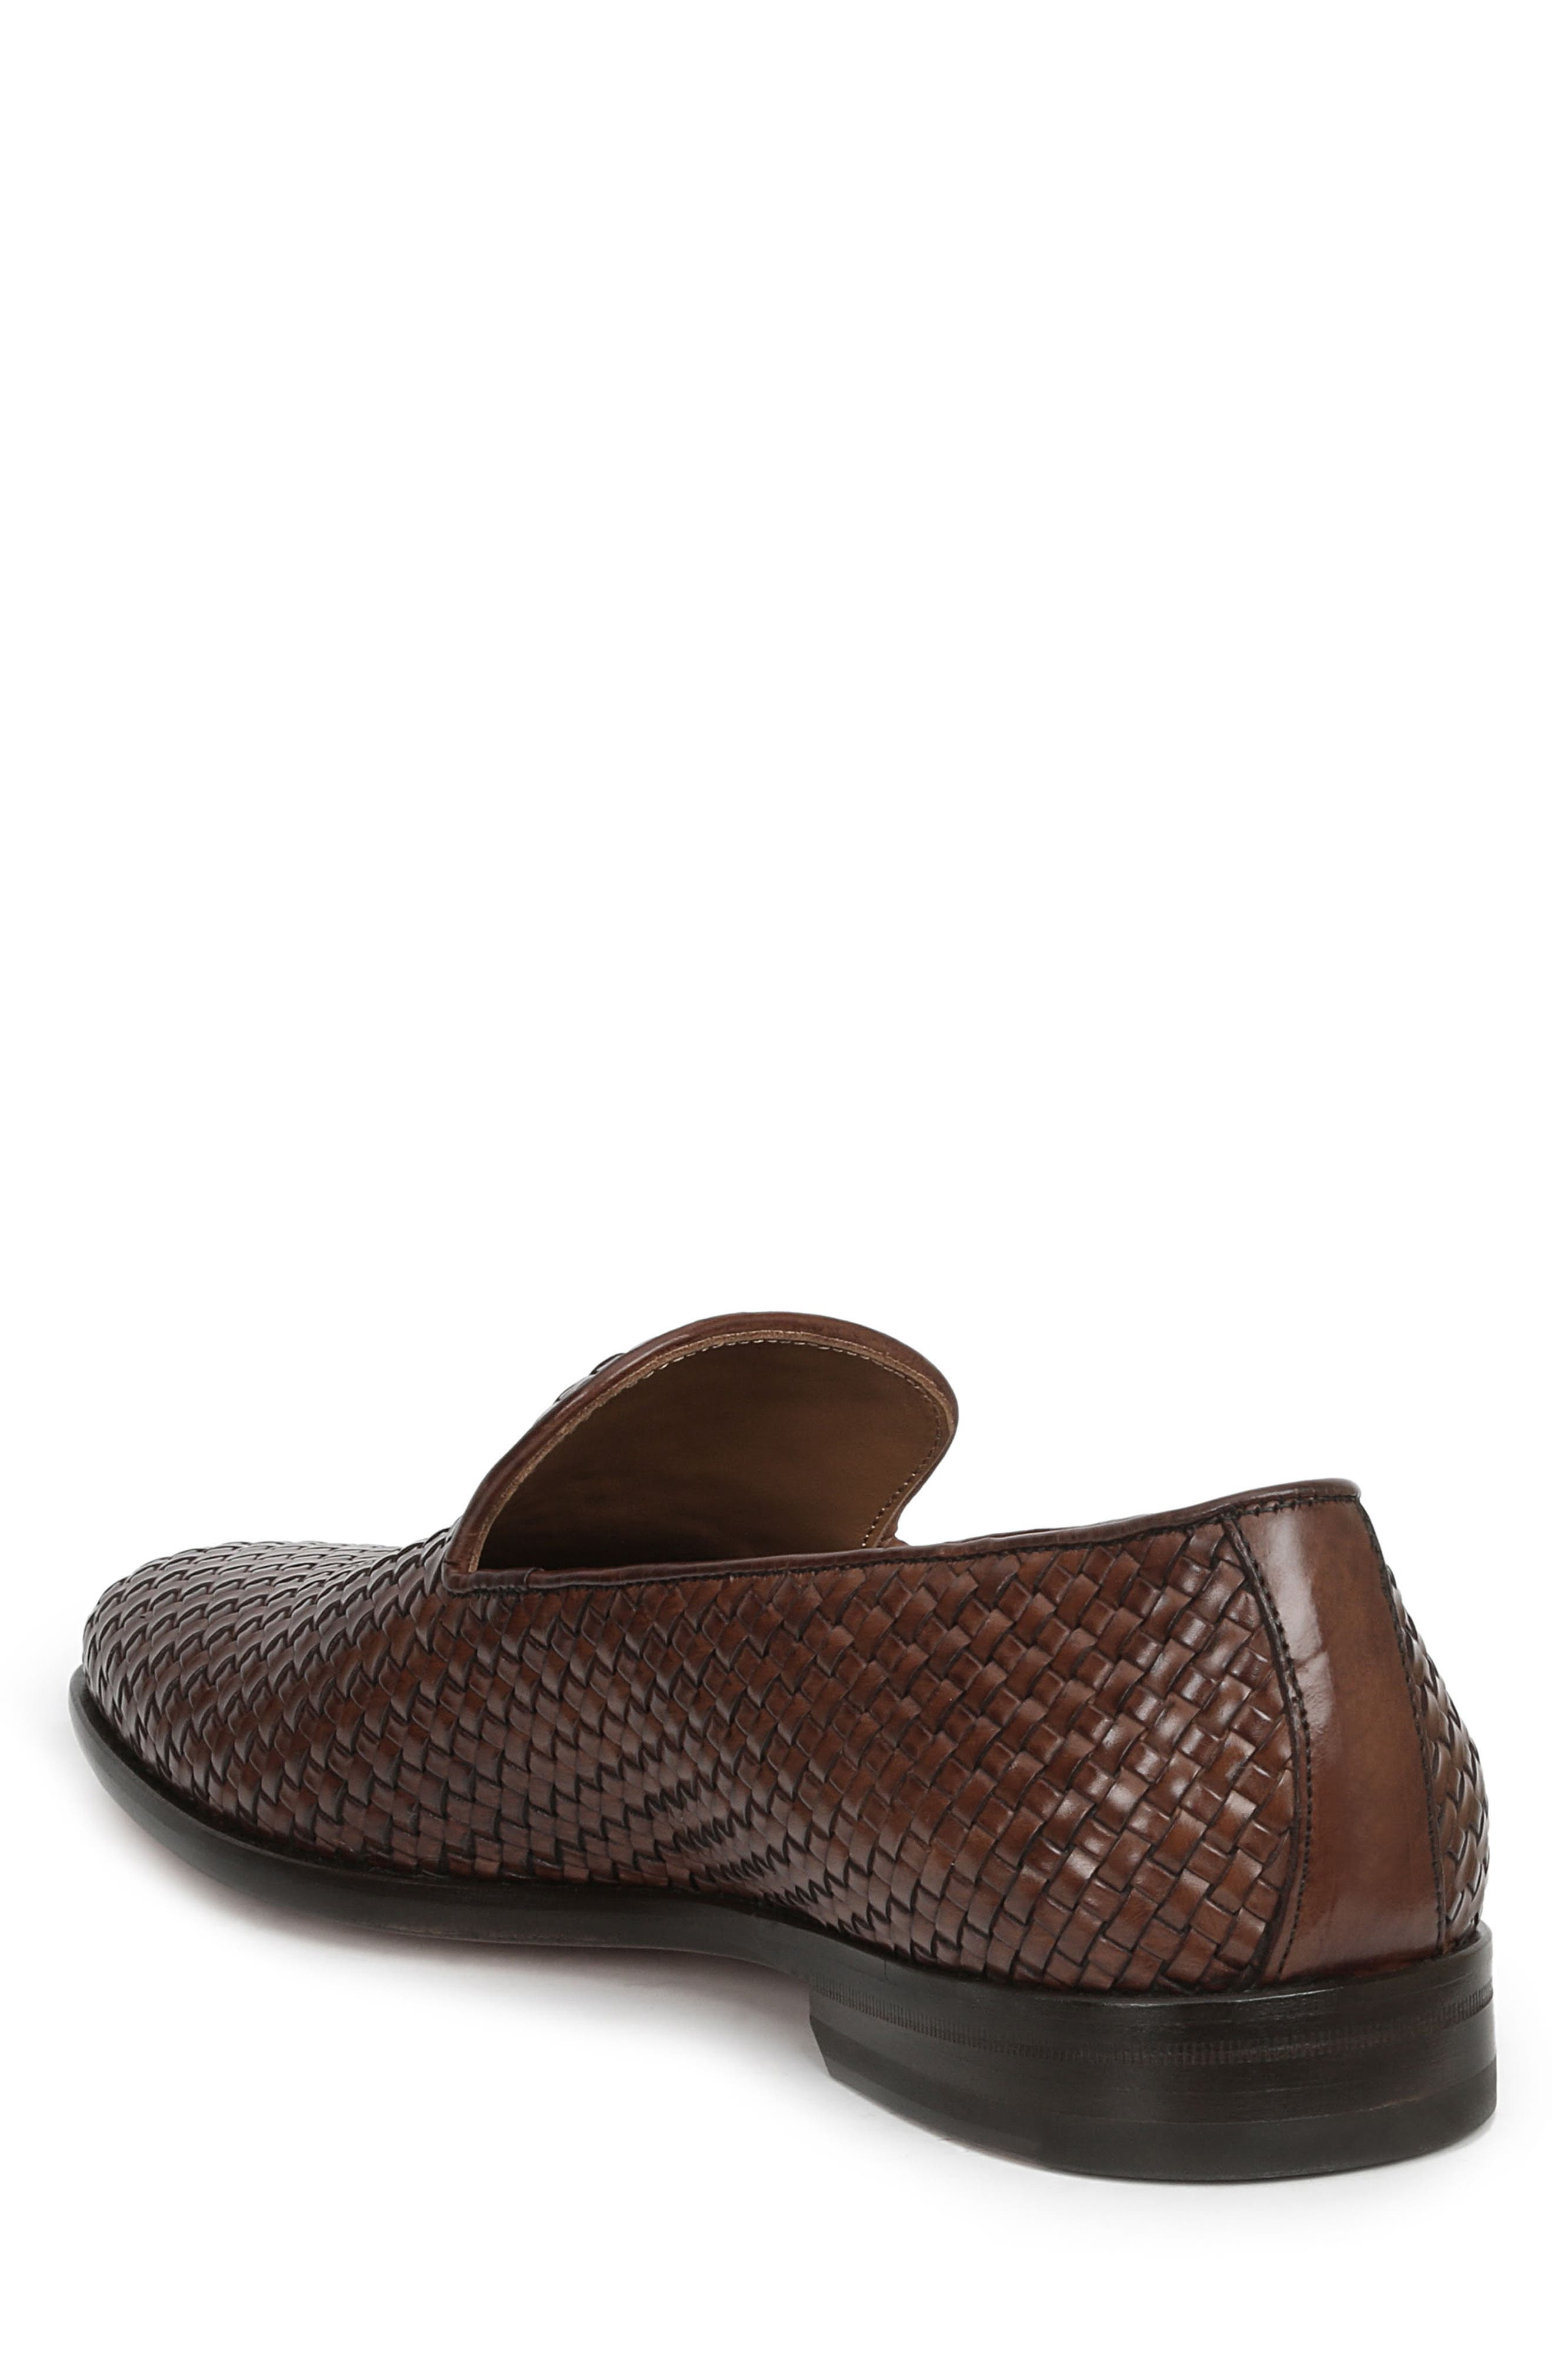 Picasso Woven Venetian Loafer,                             Alternate thumbnail 2, color,                             Cognac